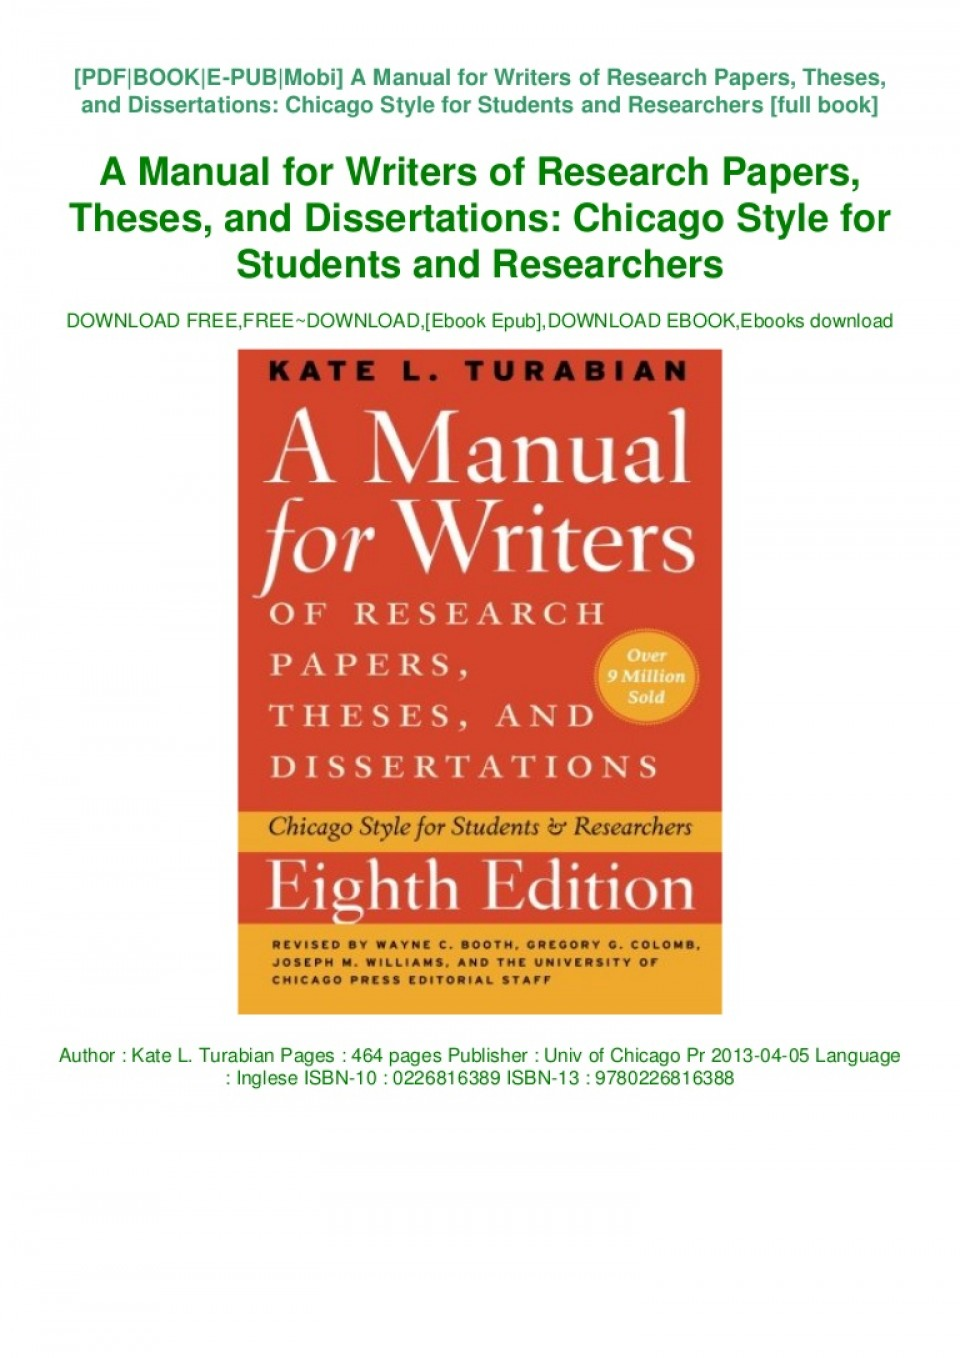 005 Book Manual For Writers Of Researchs Theses And Thumbnail Dissertations Sensational A Research Papers 8th Edition Pdf Eighth 960